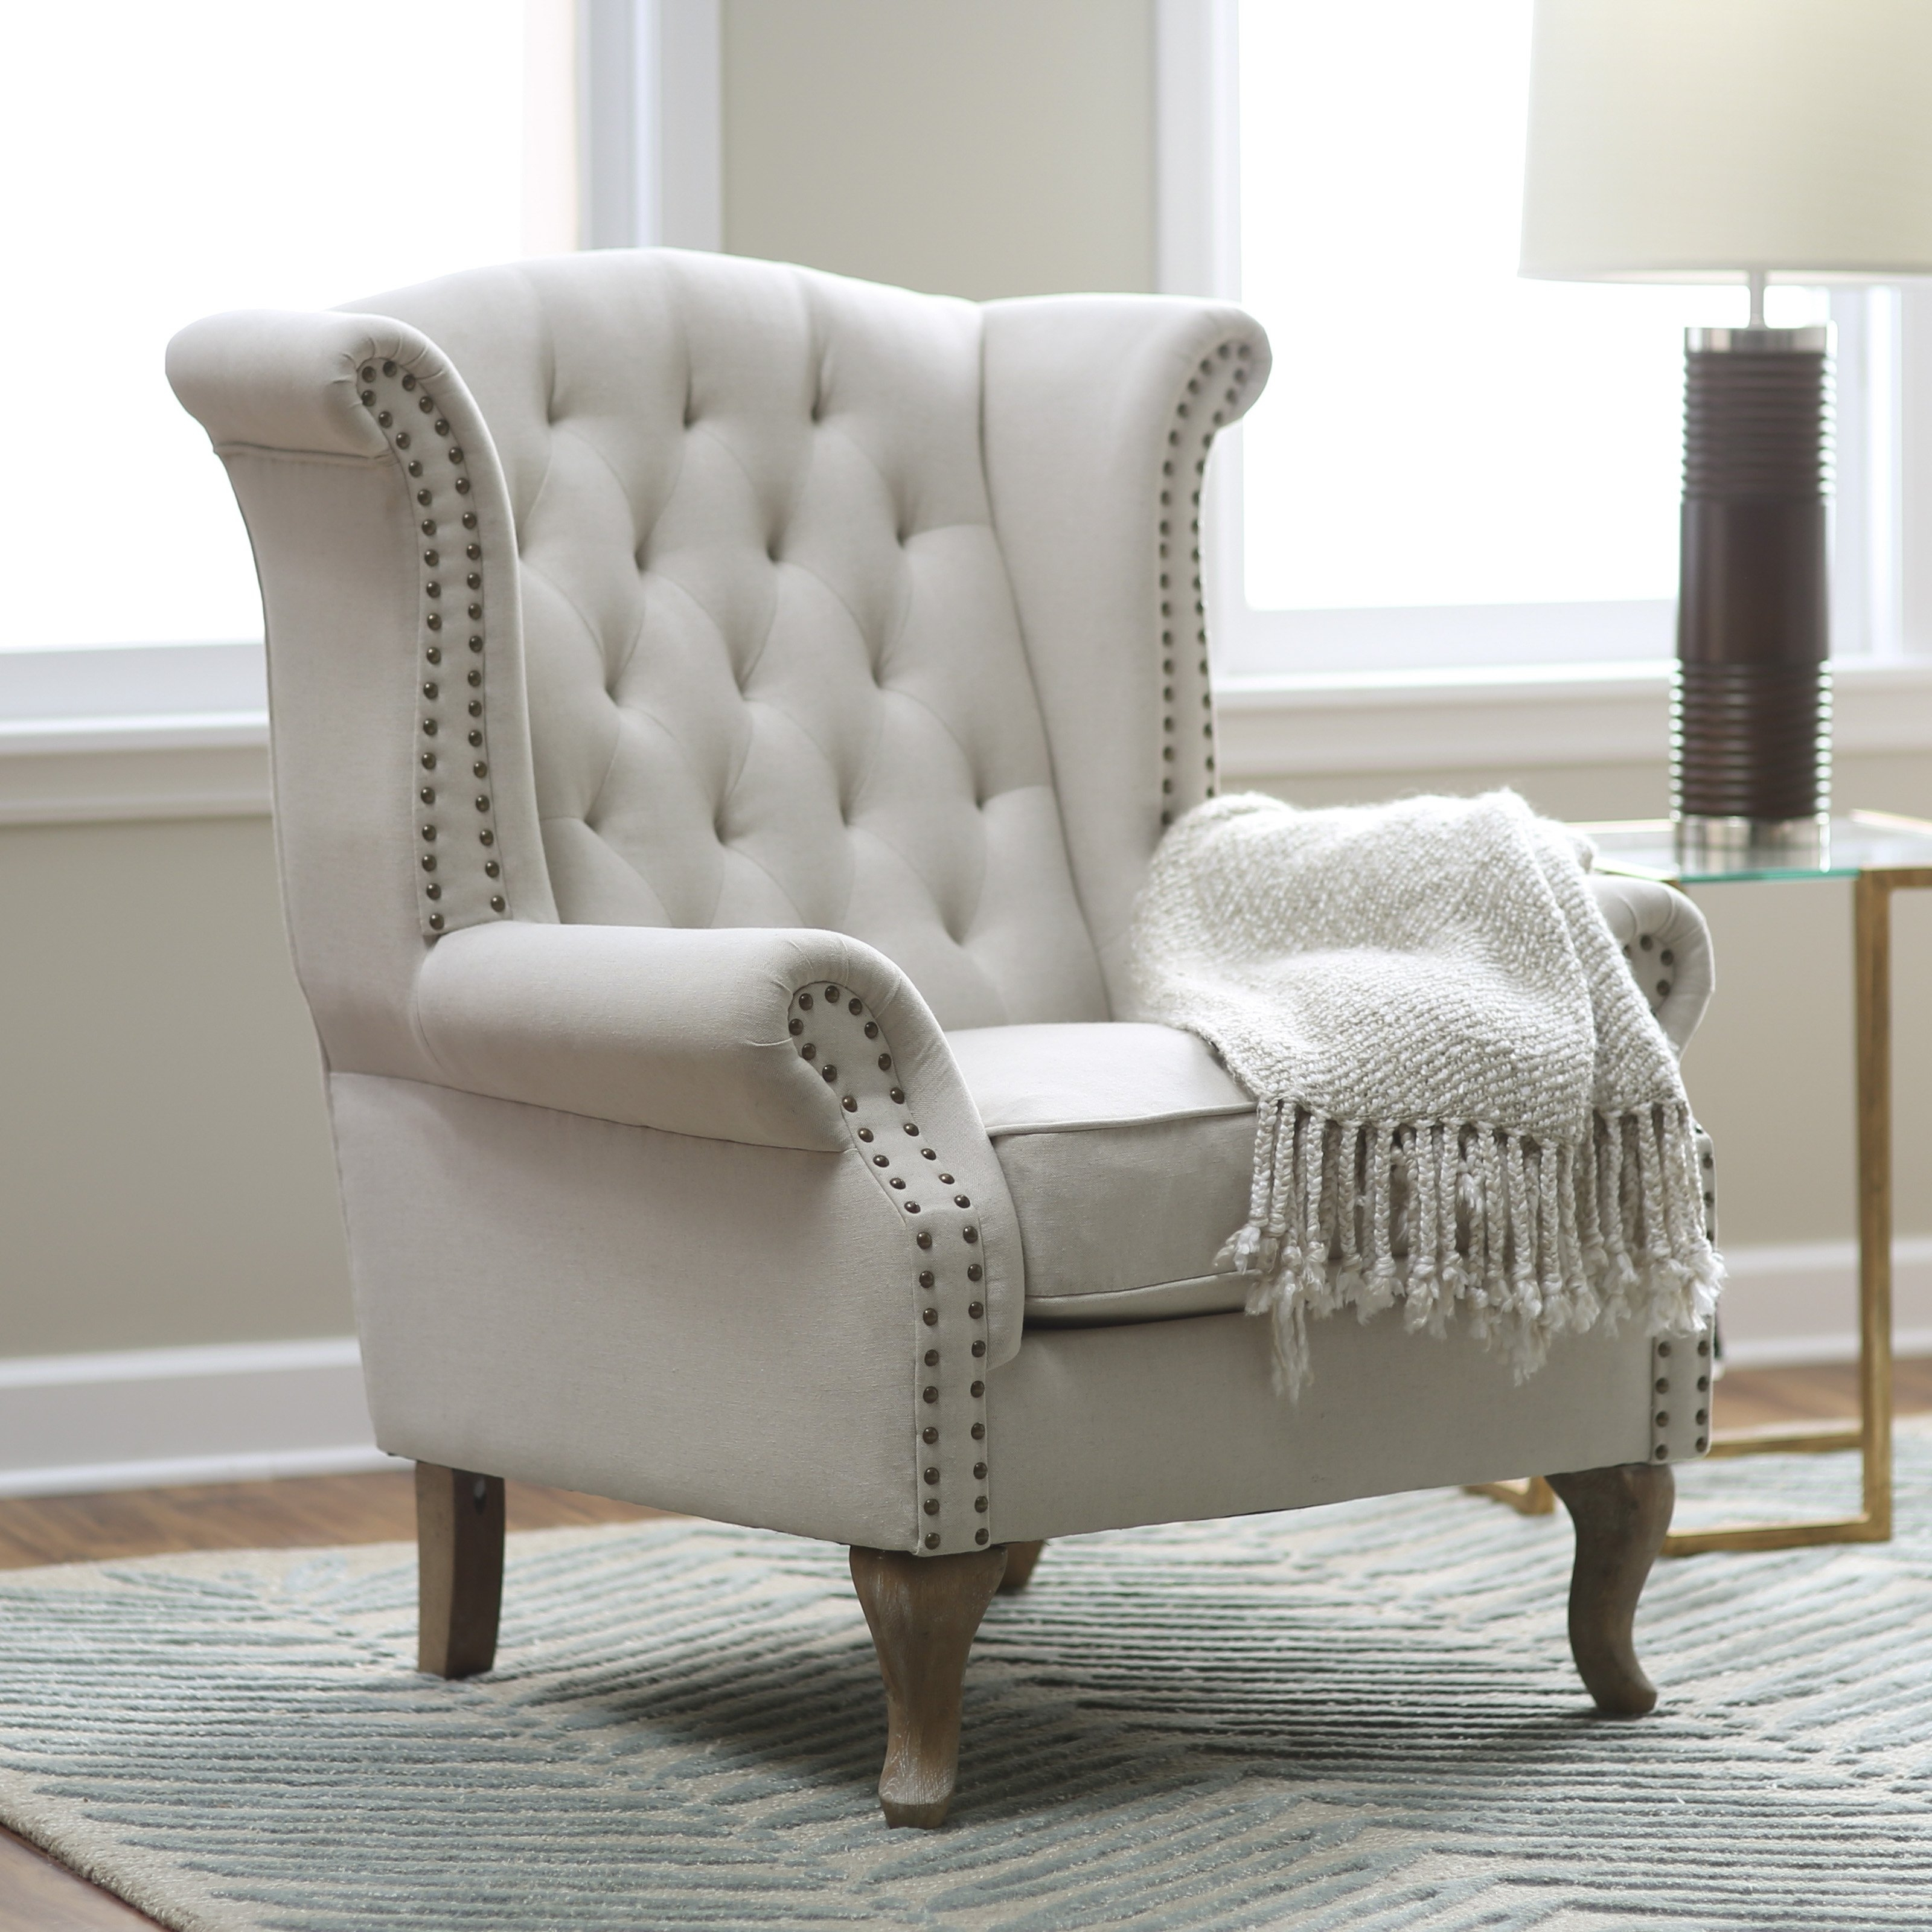 Well Known Chairs : Upholstered Accent Chairs Living Room Ideas With Stunning Throughout Sofa Arm Chairs (View 13 of 15)